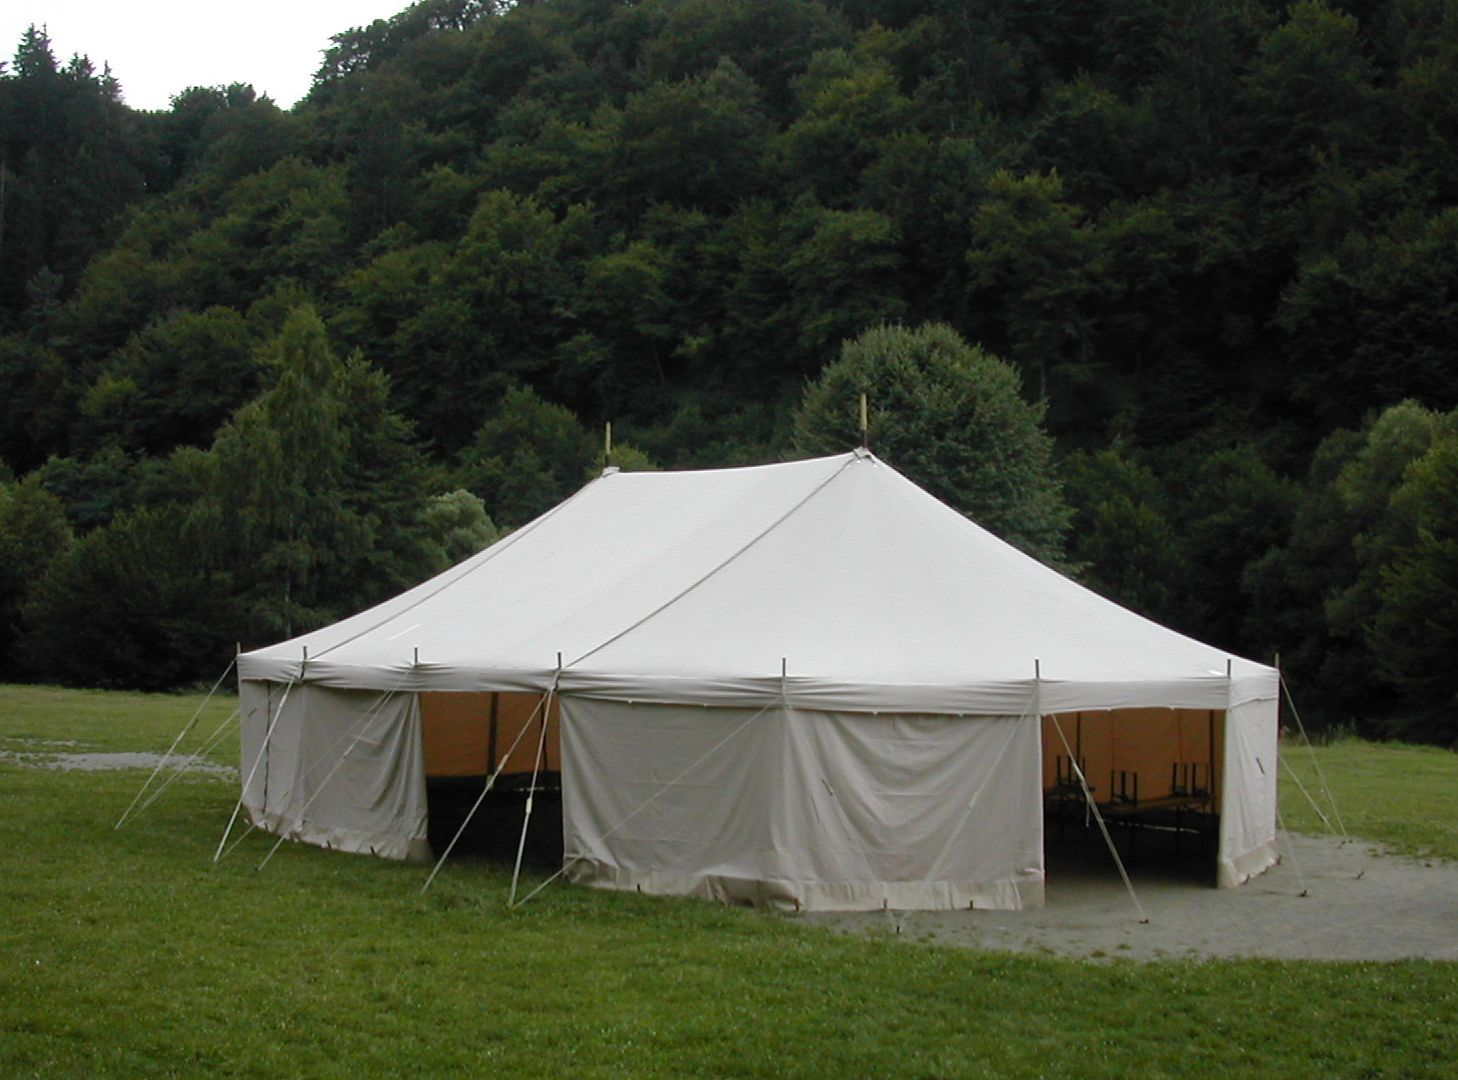 Marquee Tents | World Tents - Marquees Marquees for sale Marquees UK Traditional & Marquee Tents | World Tents - Marquees Marquees for sale ...